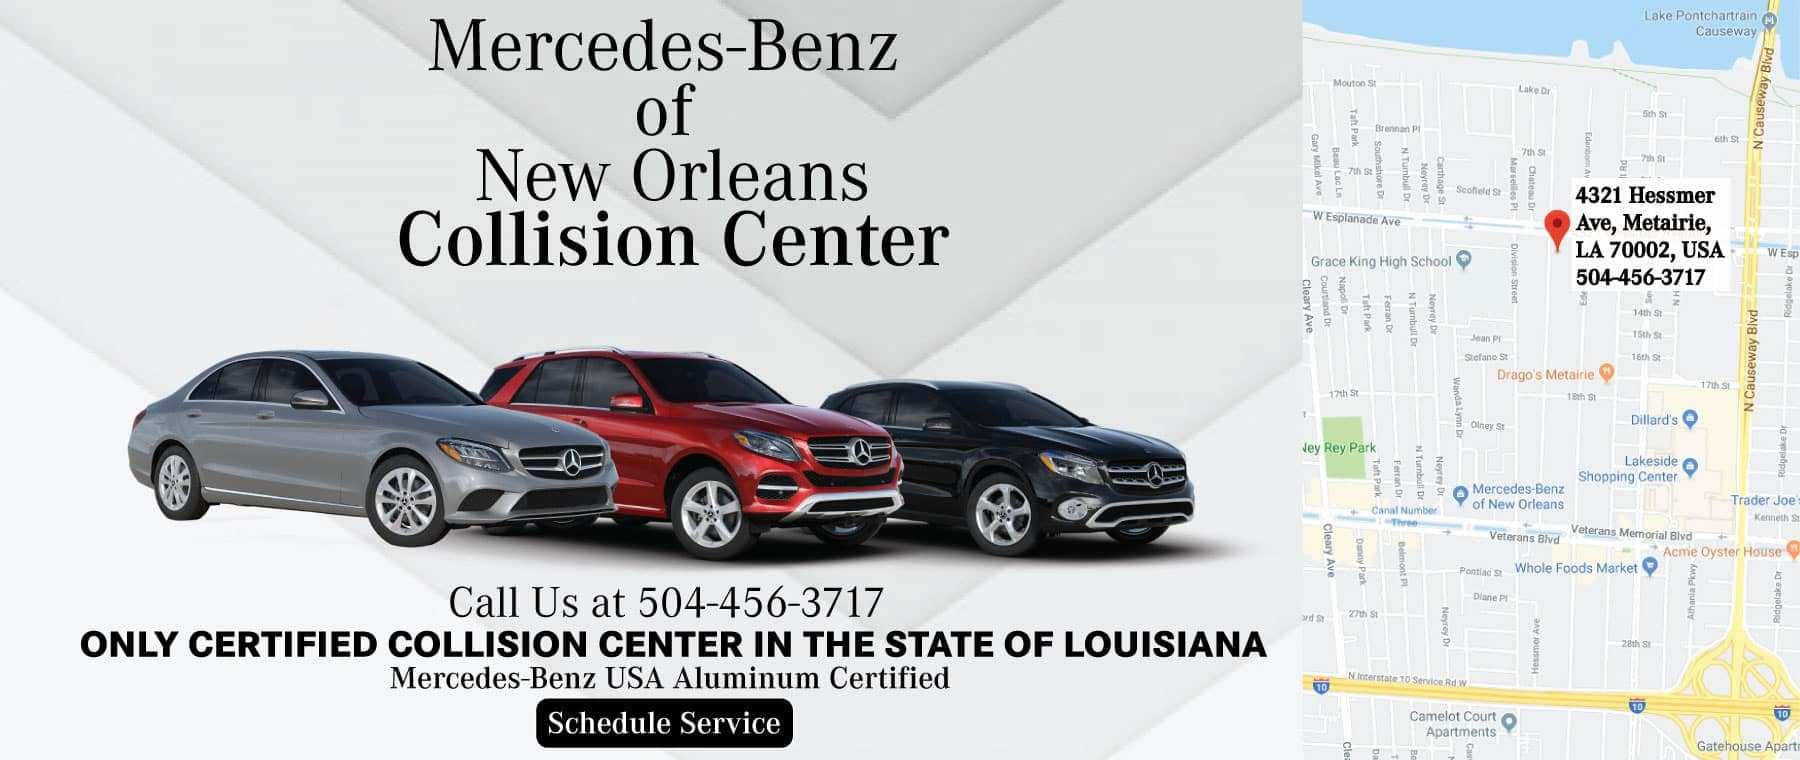 Mercedes-Benz Collision Center in New Orleans